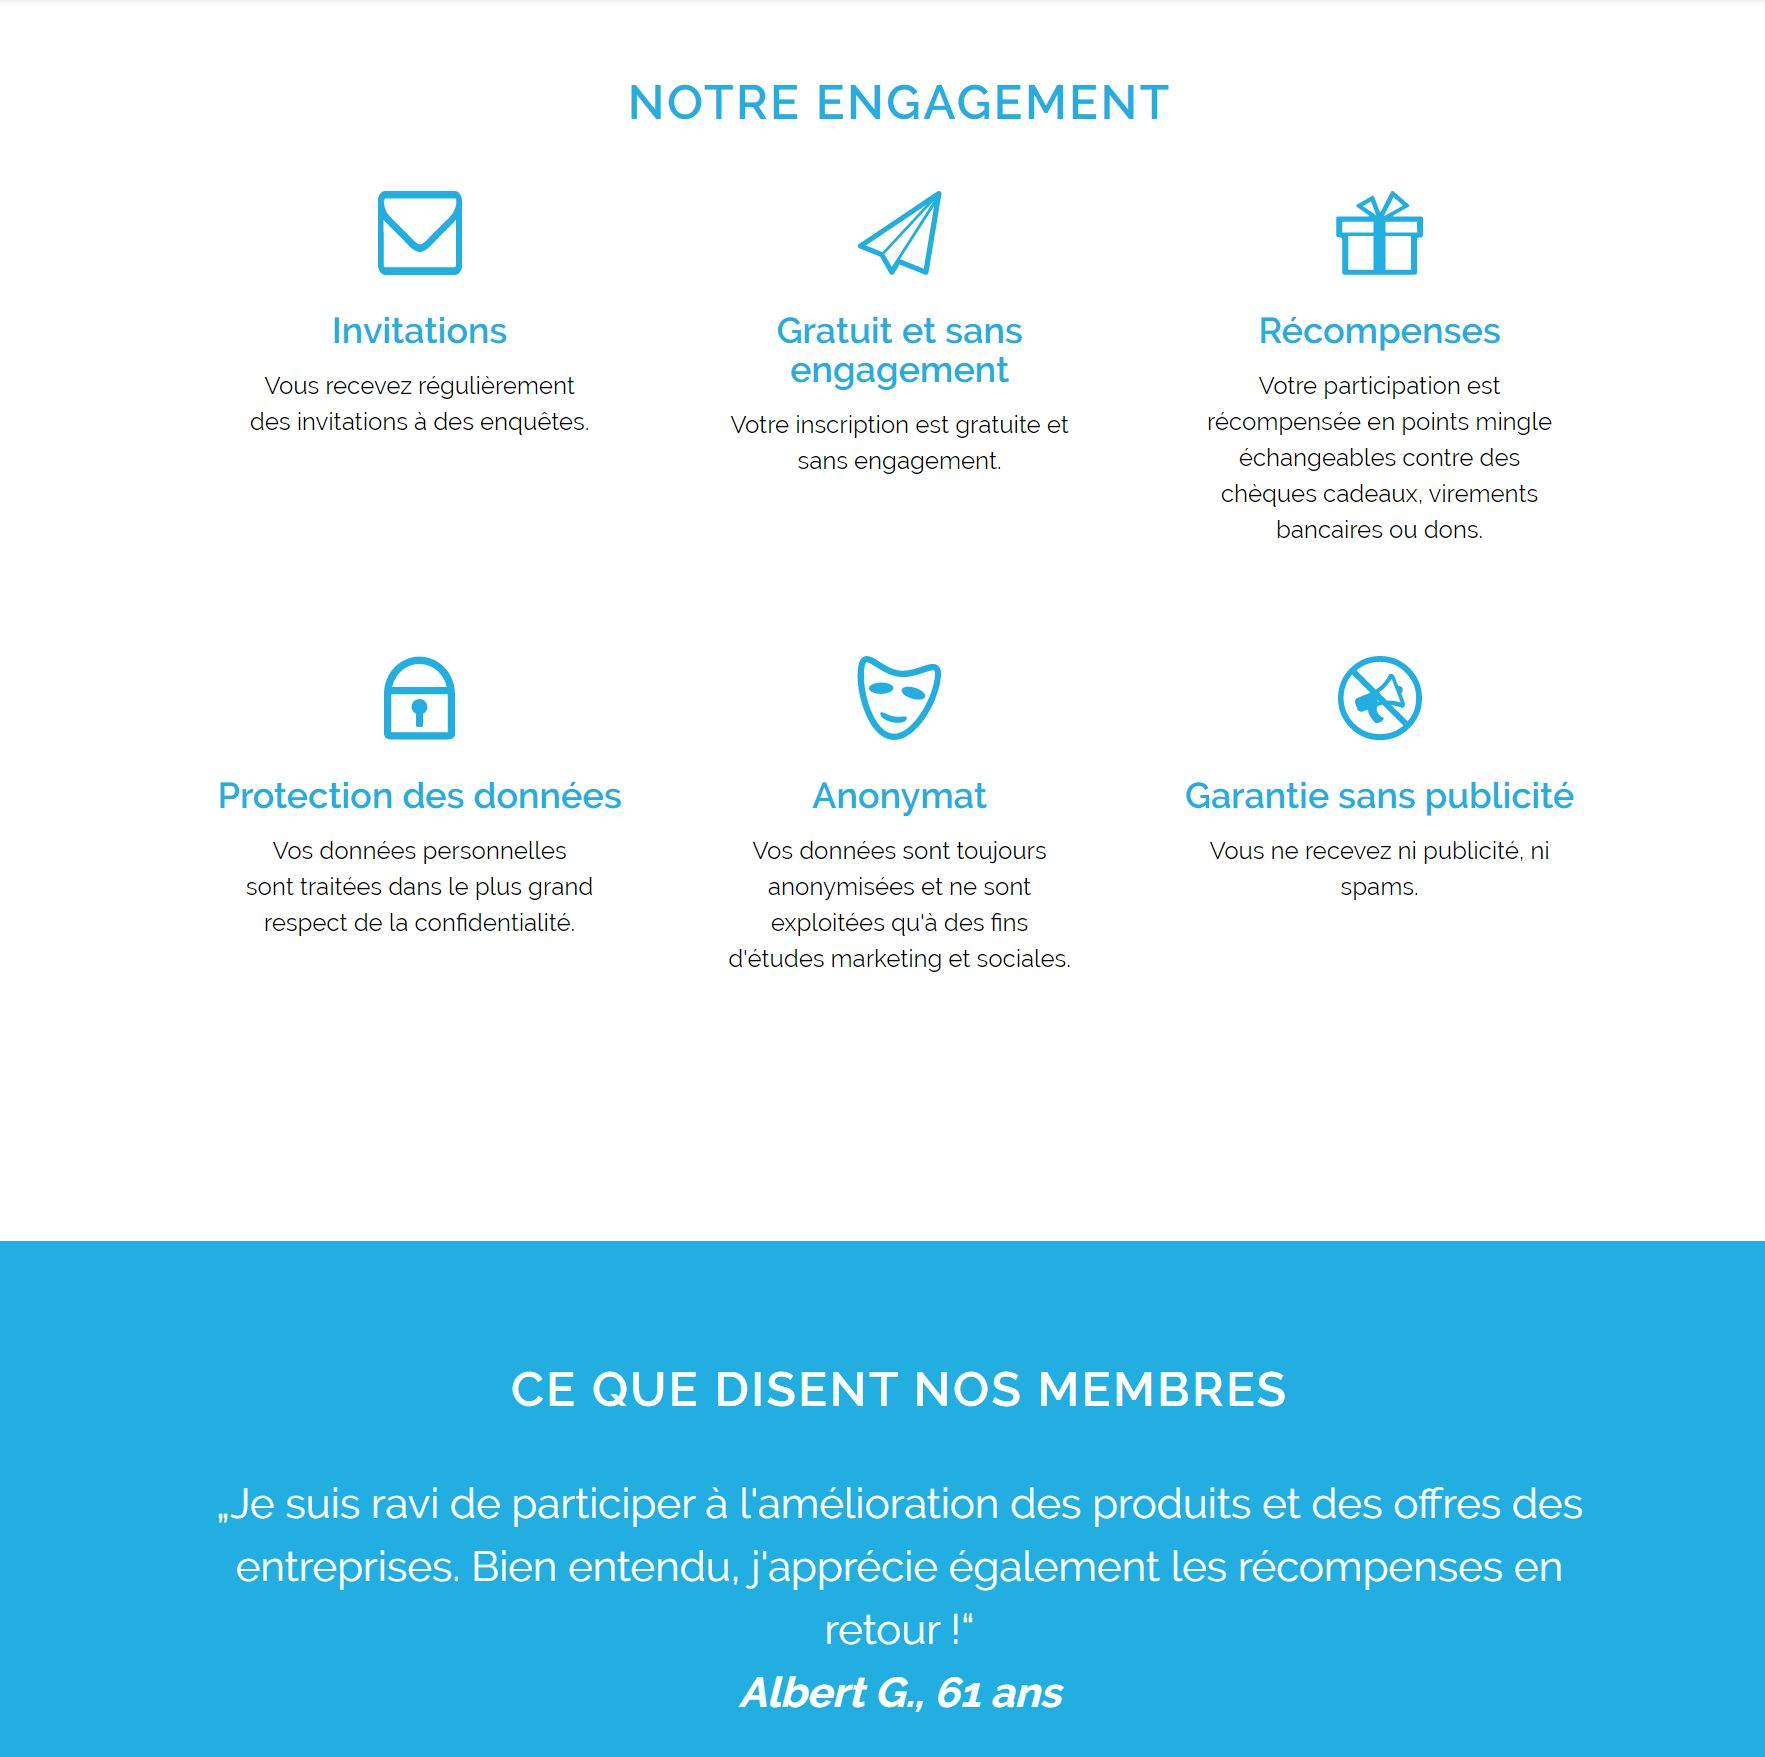 avis site mingle-respondi.fr